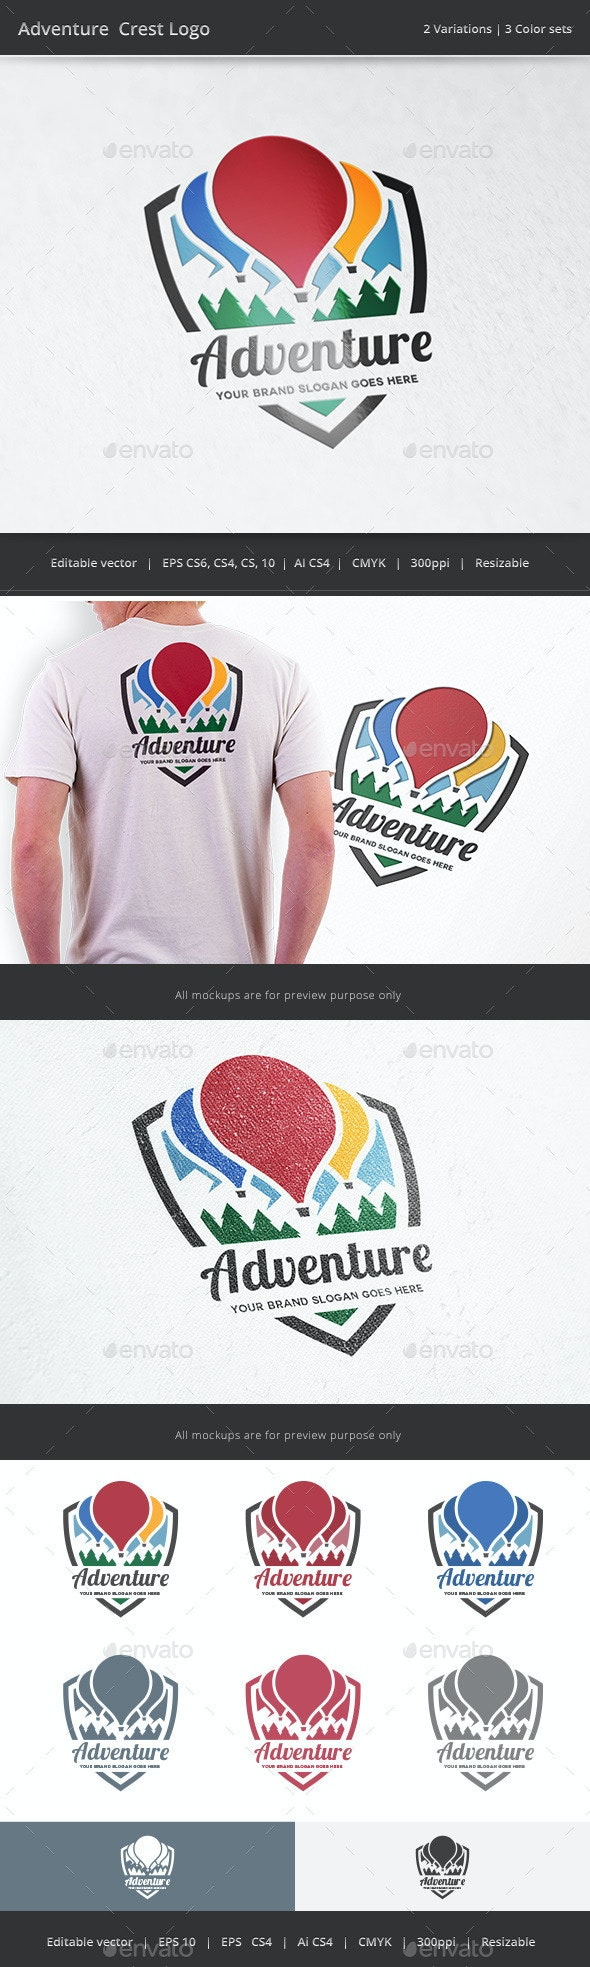 Adventure Crest Logo - Crests Logo Templates